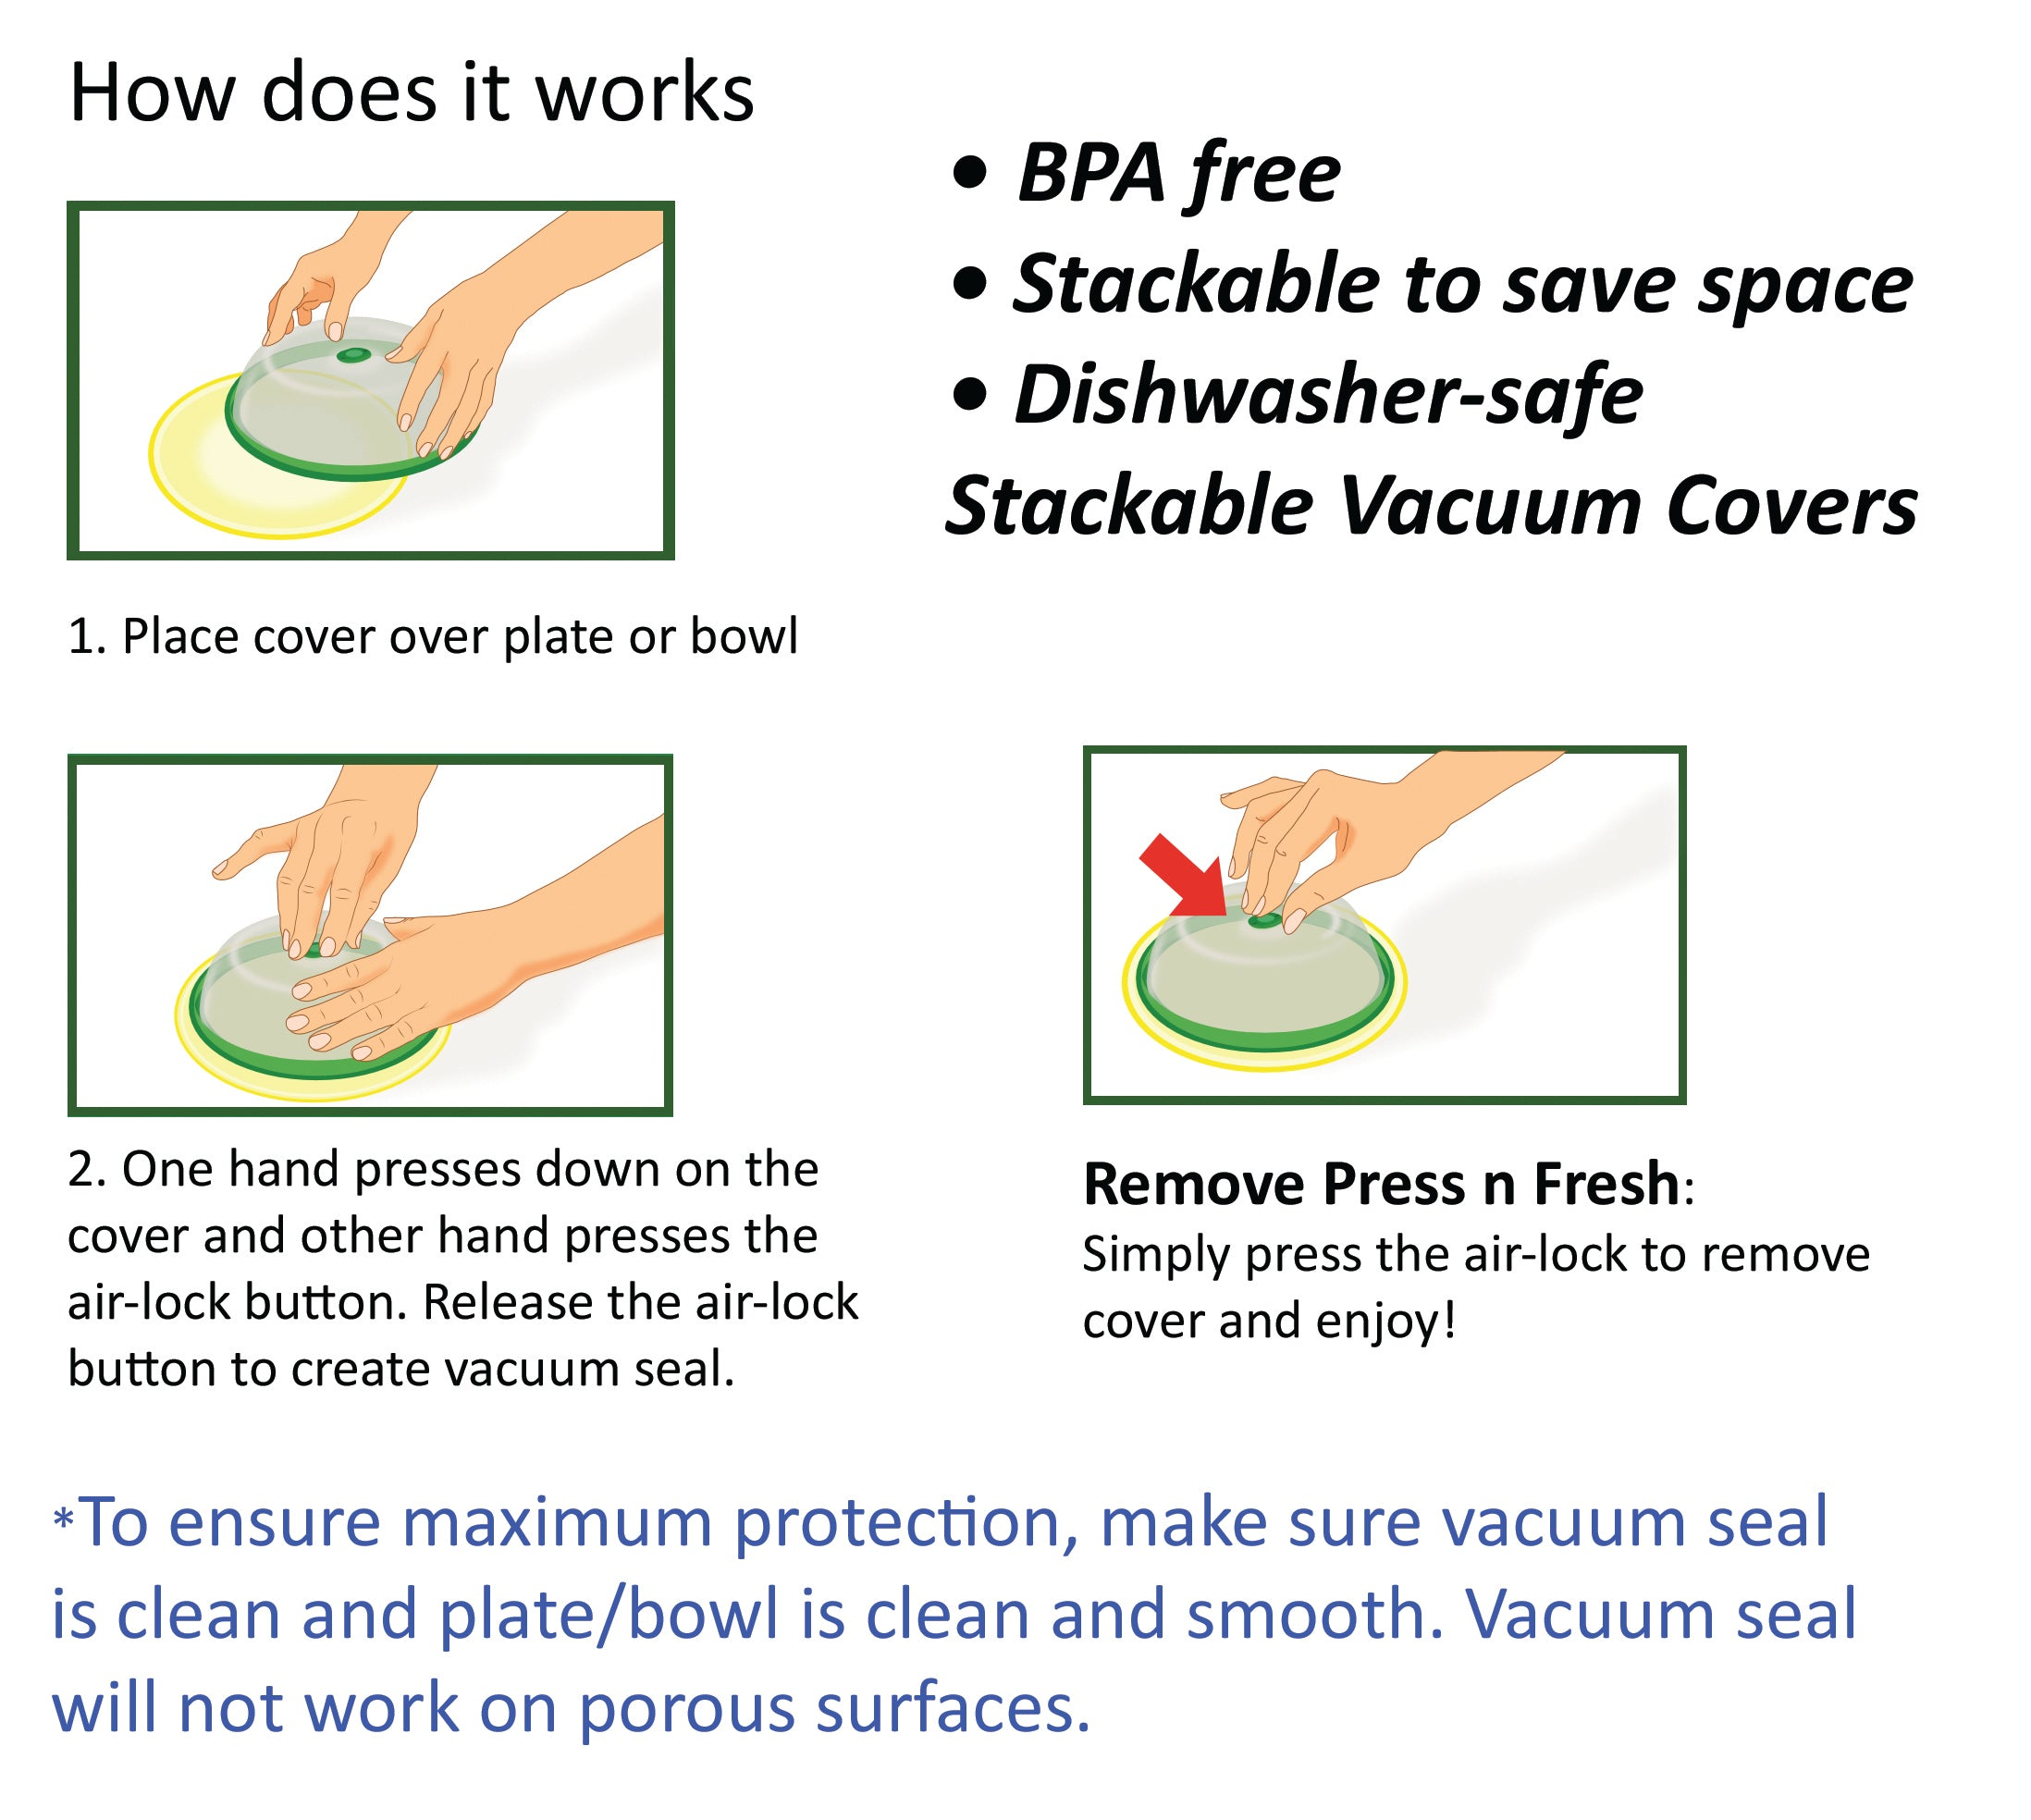 Press n Fresh Universal Vacuum Air-tight Food Sealer Container Plate Platter Lid Cover Topper Dome, Stackable, Safe for Microwave, Dishwasher and BPA Free (9 & 7 inches, Green)